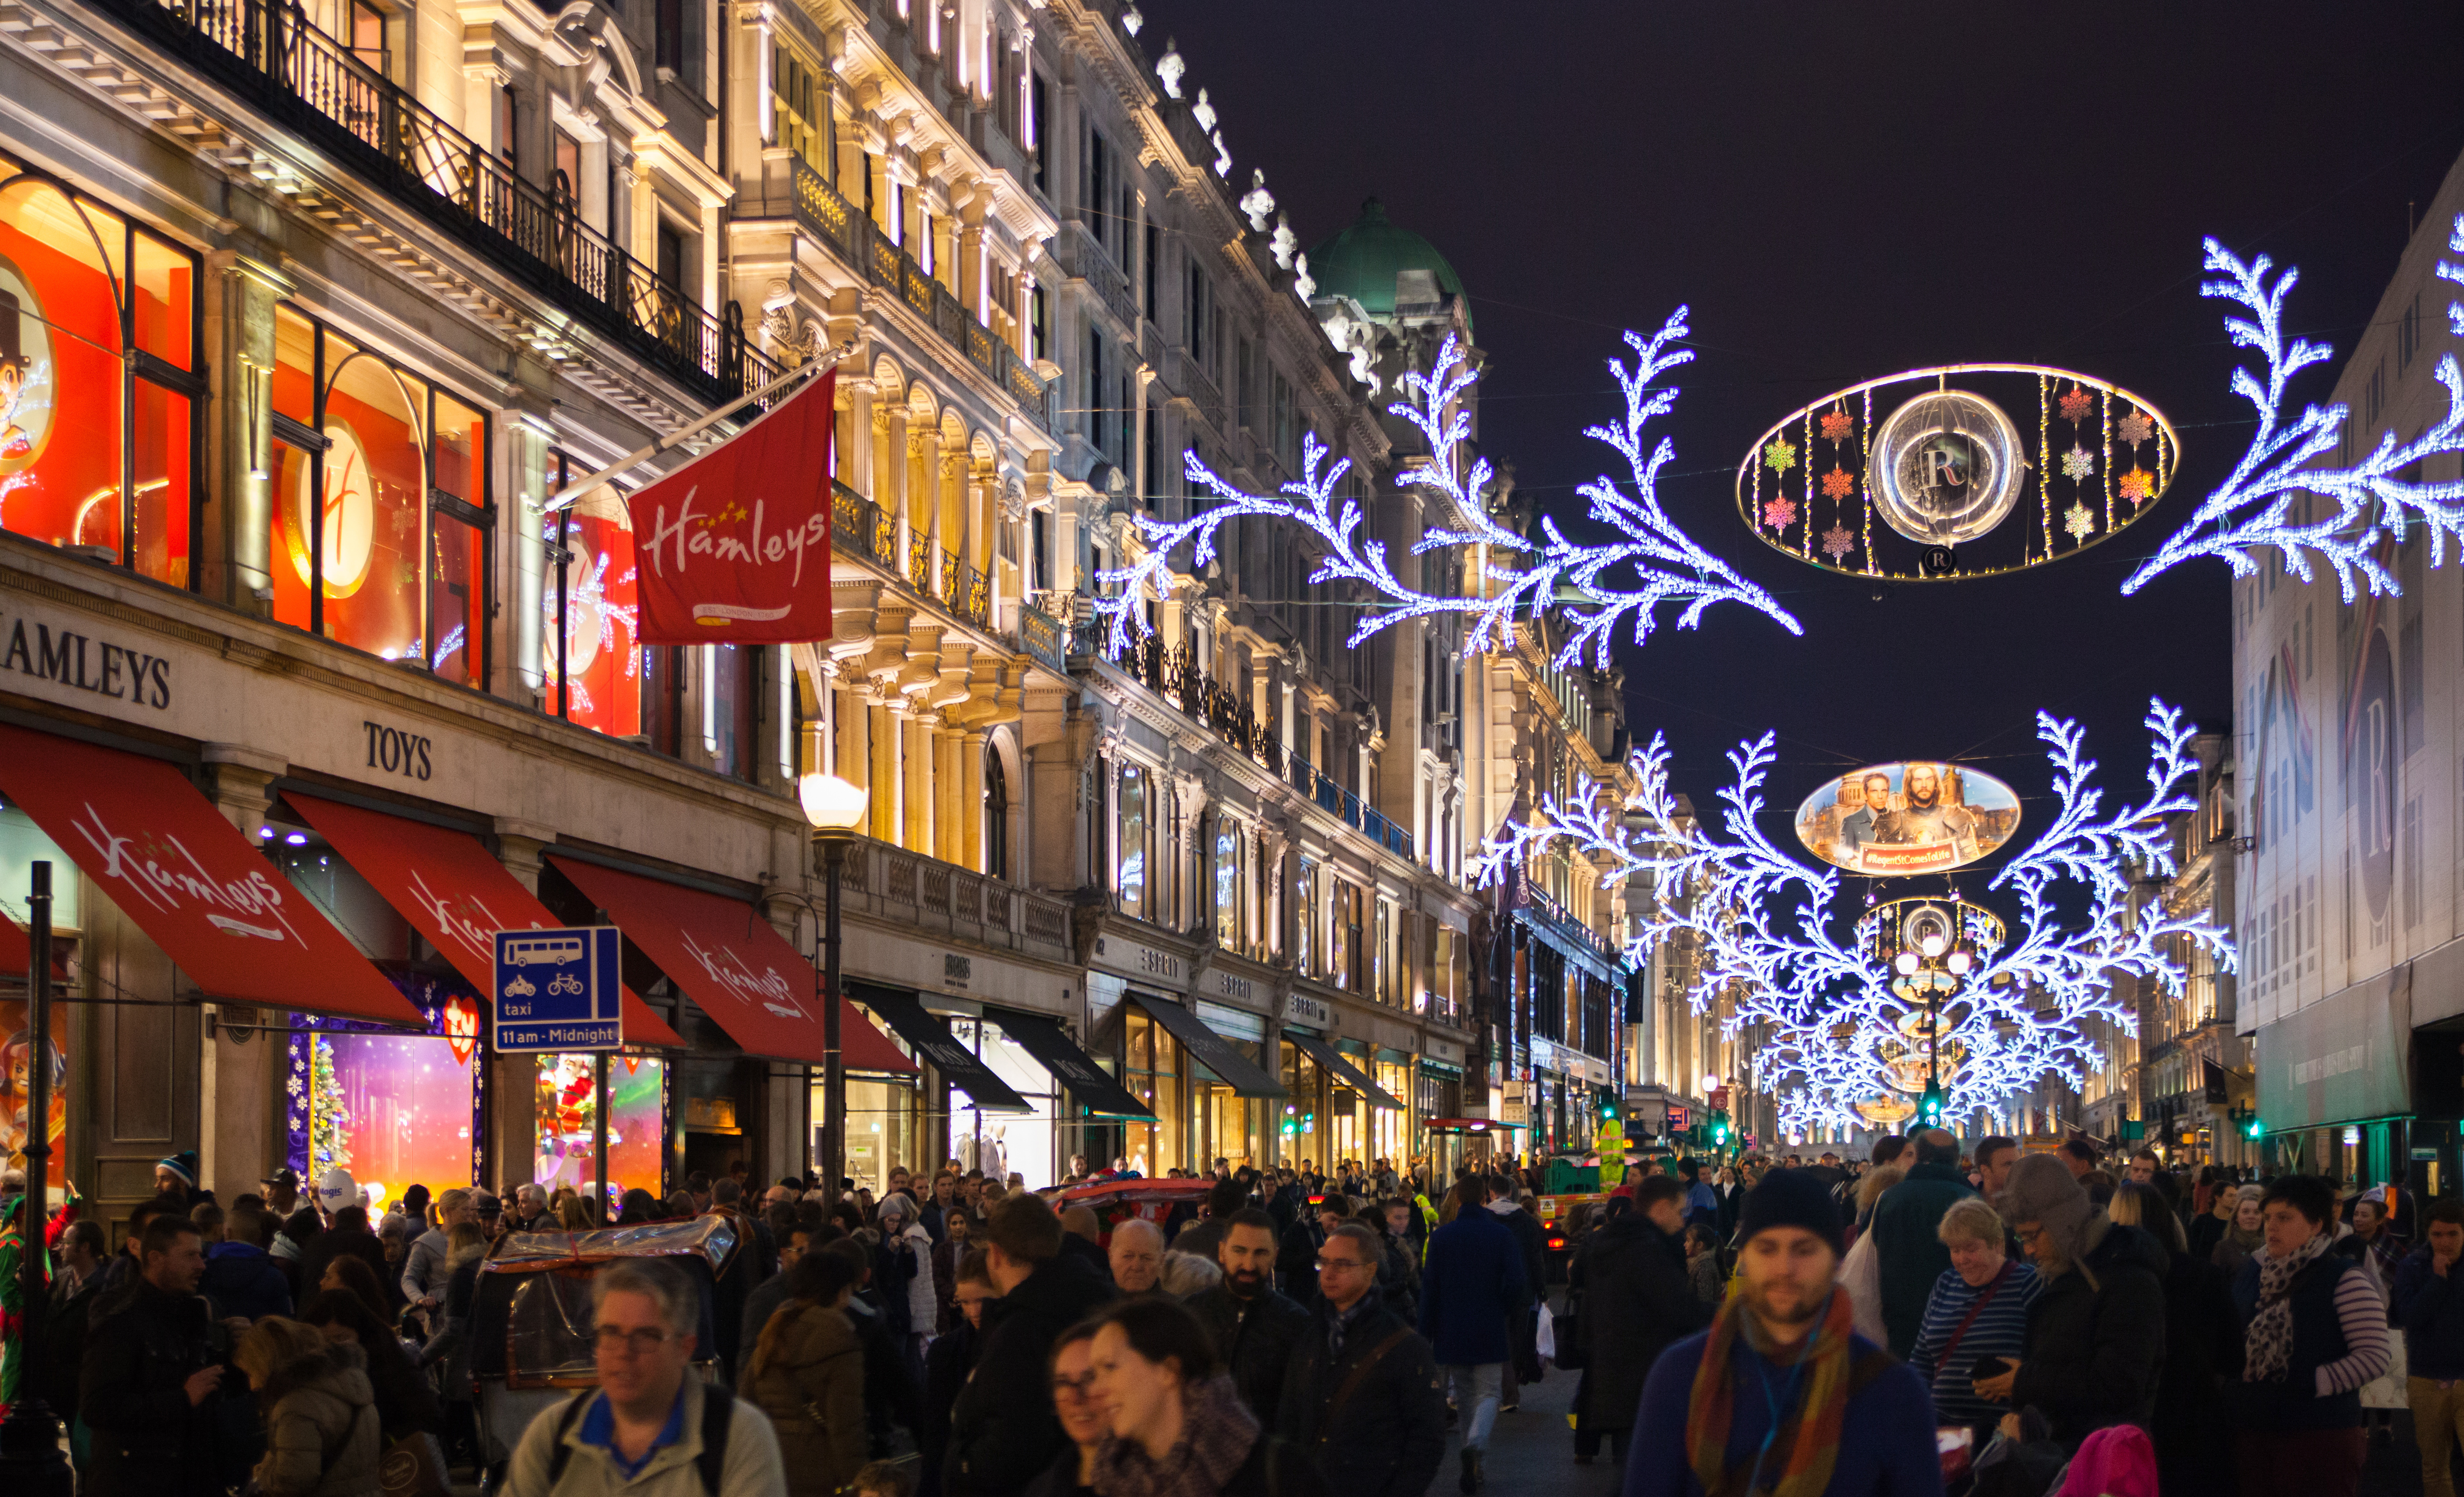 Oxford Street starts London's Christmas festivities